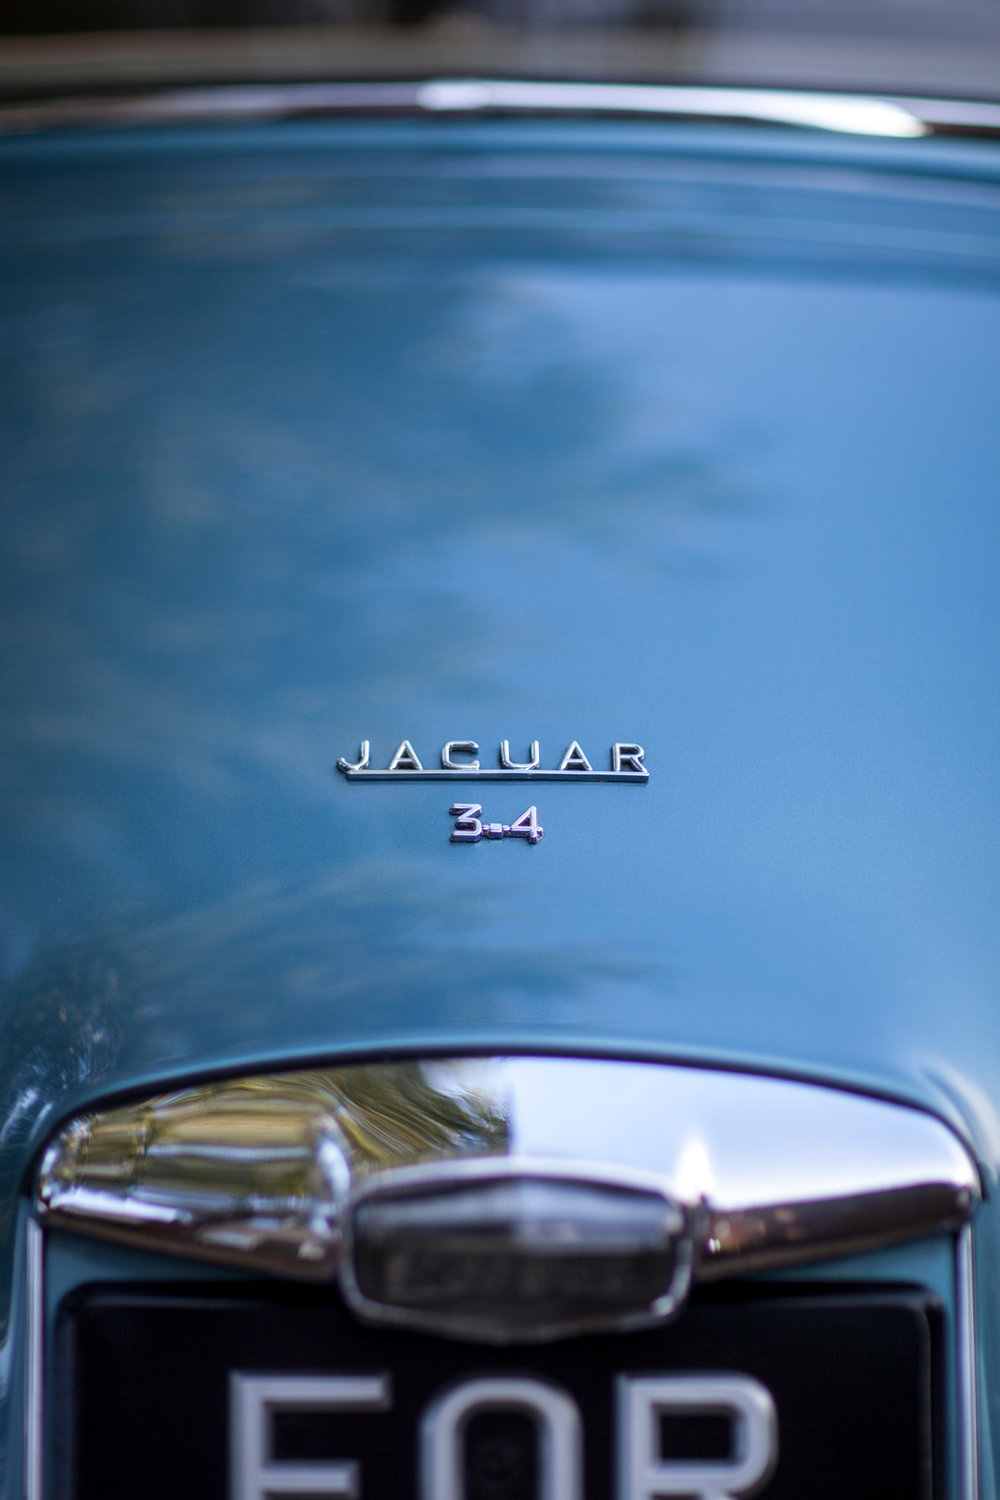 Jaguar, wedding car, blue wedding car, vintage car,